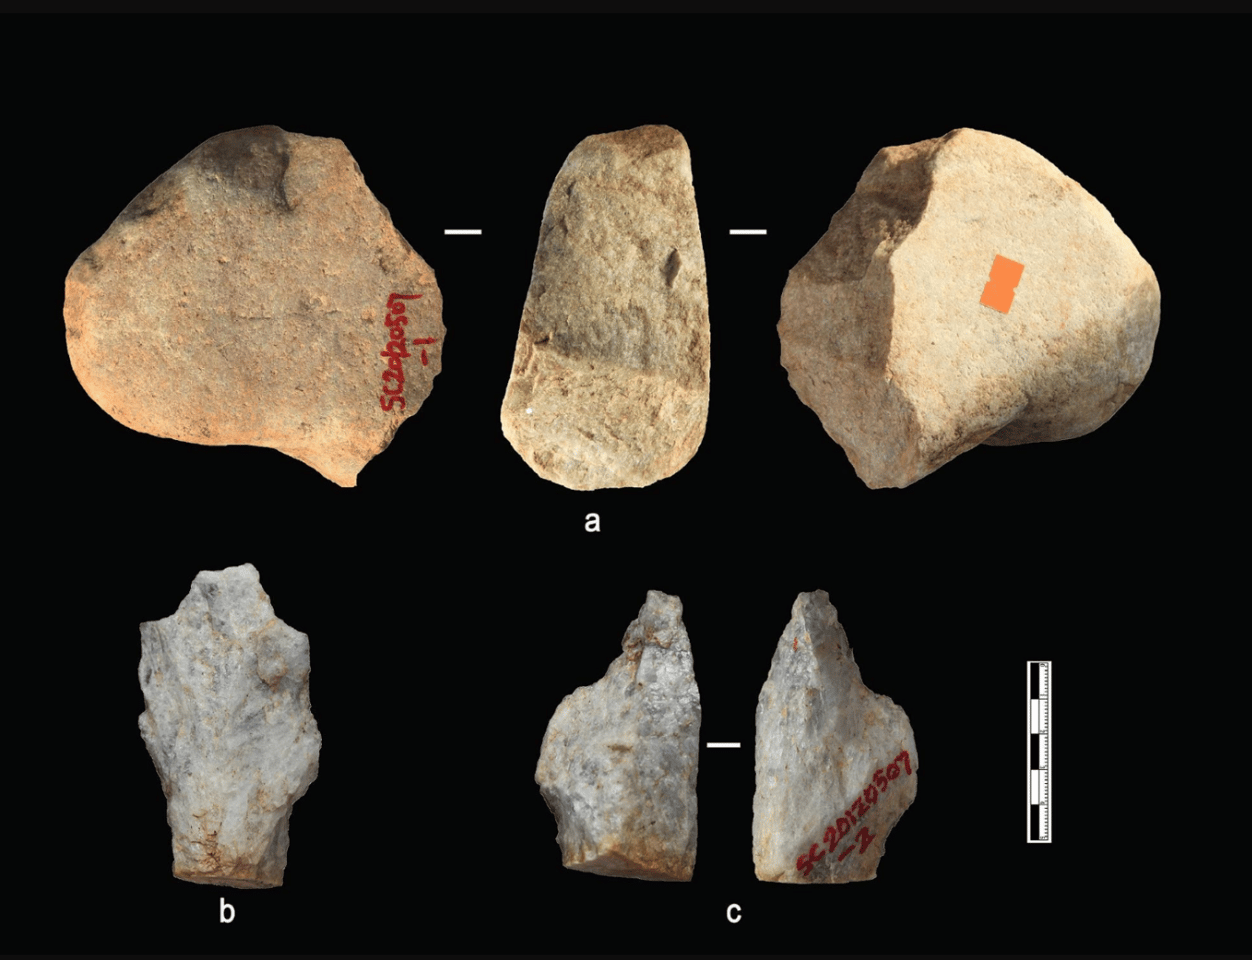 The team discovered bones andstone tools, including a notch, scrapers, cobble, hammer stones and pointed pieces